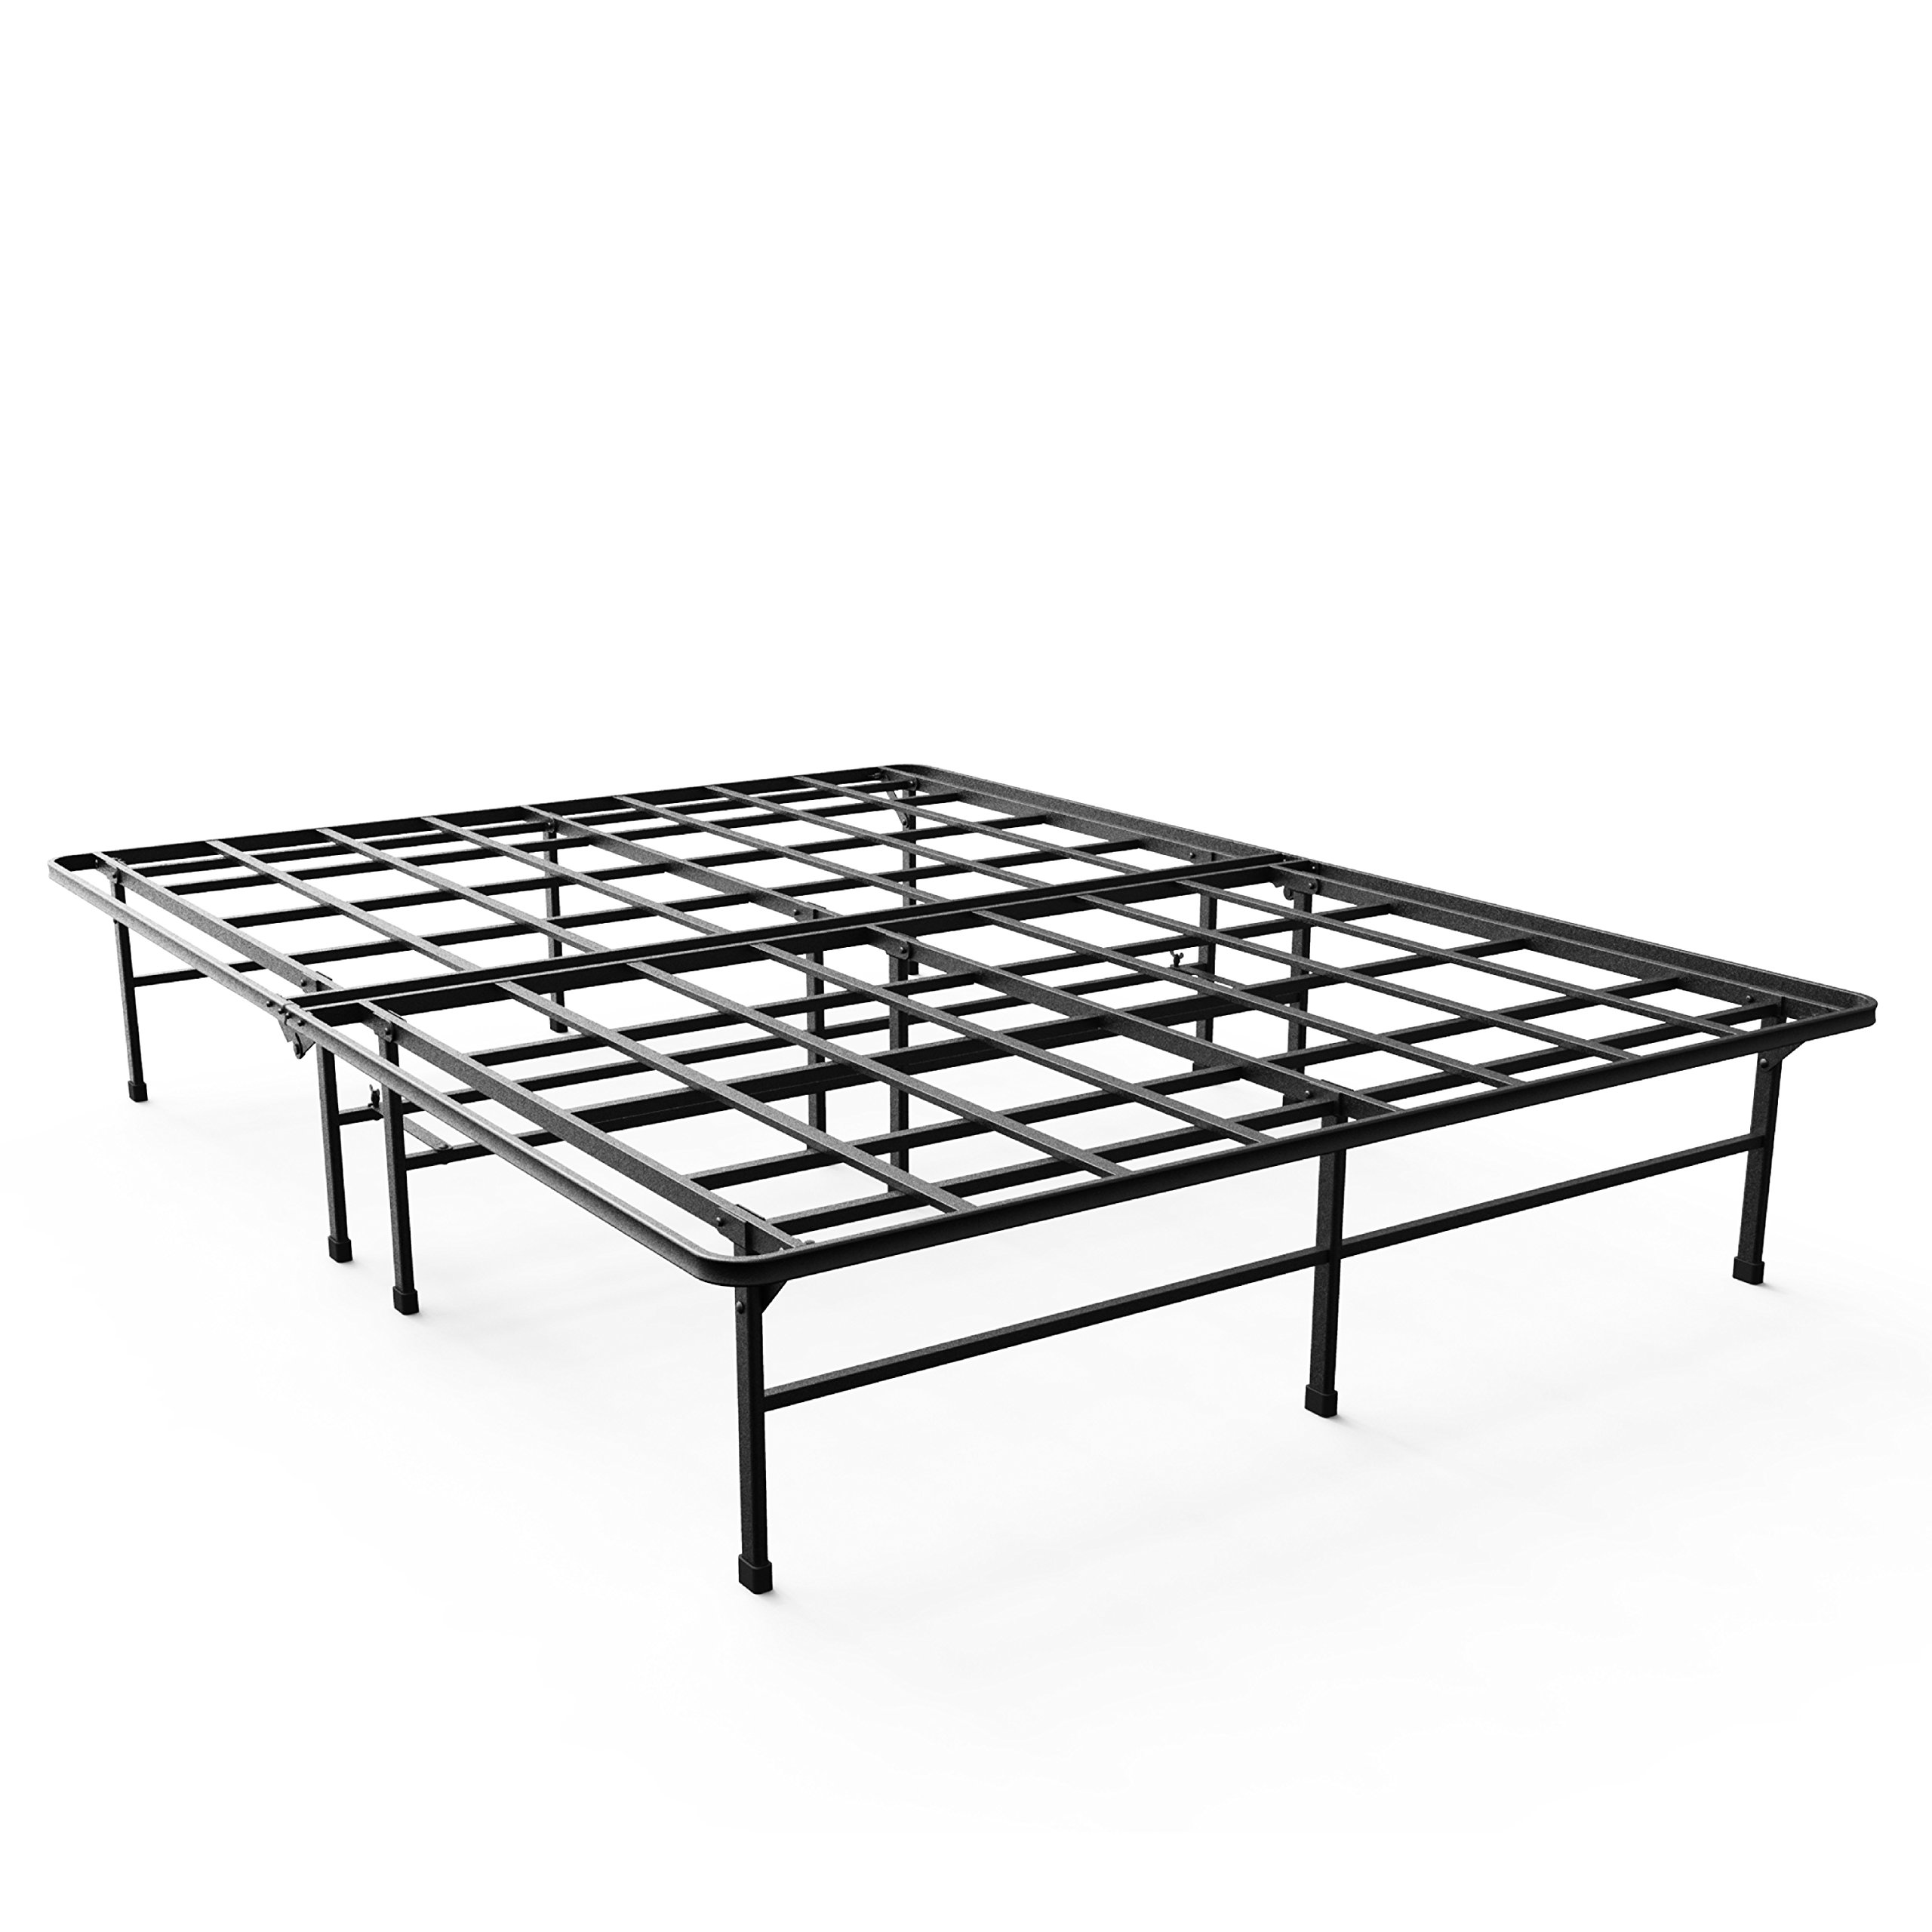 Zinus 14 Inch Elite SmartBase Mattress Foundation For Big Tall Extra Strong Support Platform Bed Frame Box Spring Replacement Sturdy